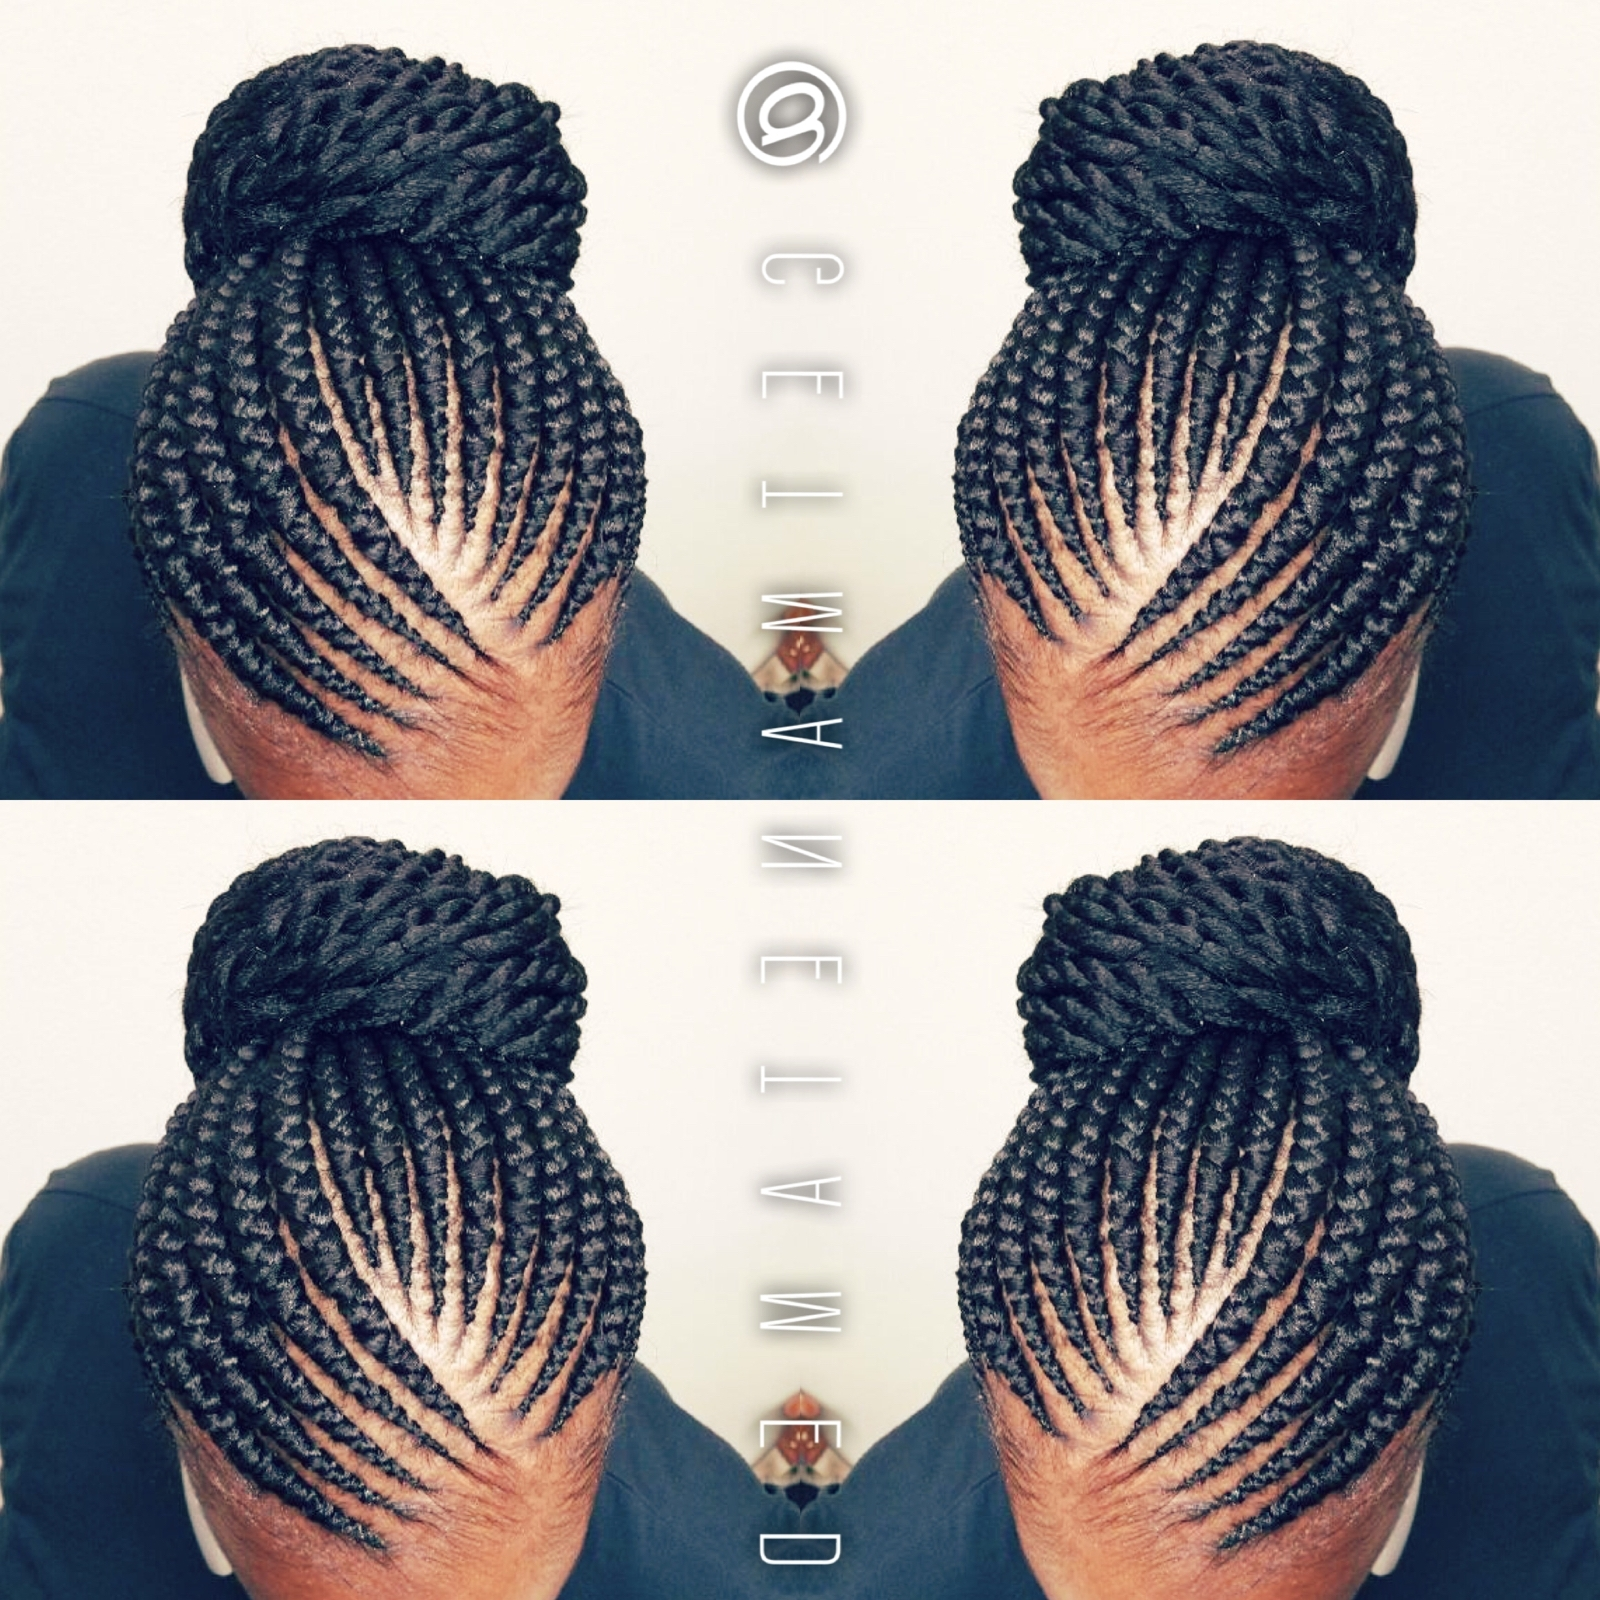 Ghana Braids. Ghana Cornrows. Banana Cornrows. Feed In Cornrows With Regard To Cornrow Updo Bun Hairstyles (Gallery 14 of 15)